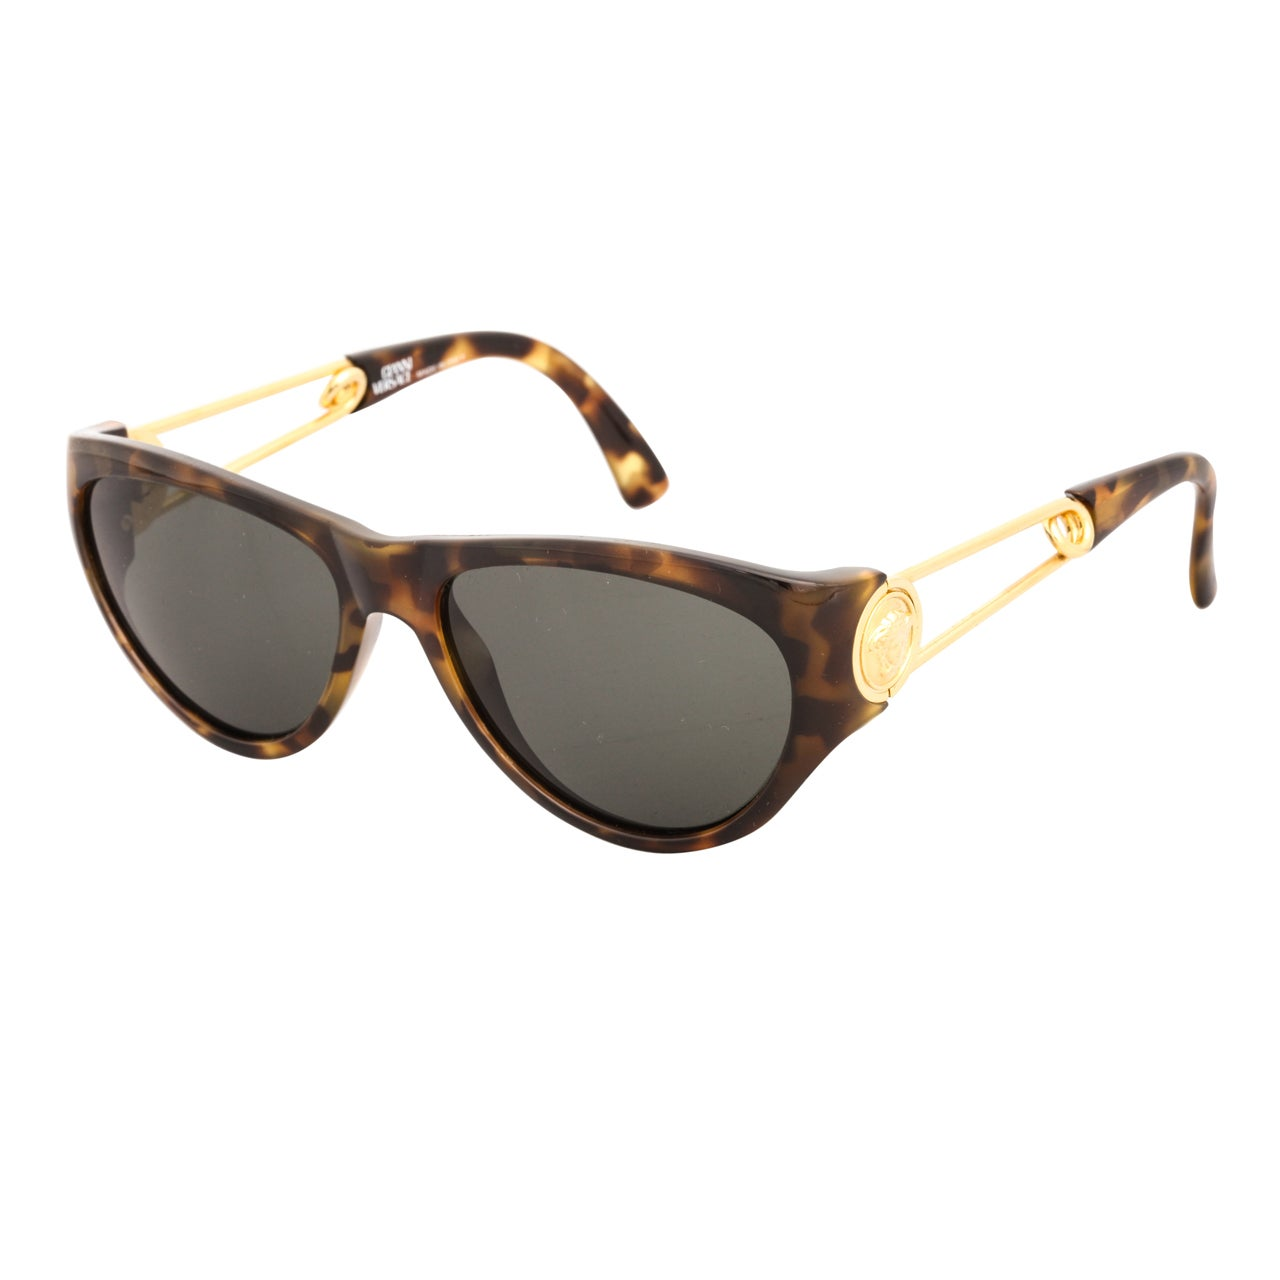 Gianni Versace Safety Pin Sunglasses Mod 427 Col 279 At